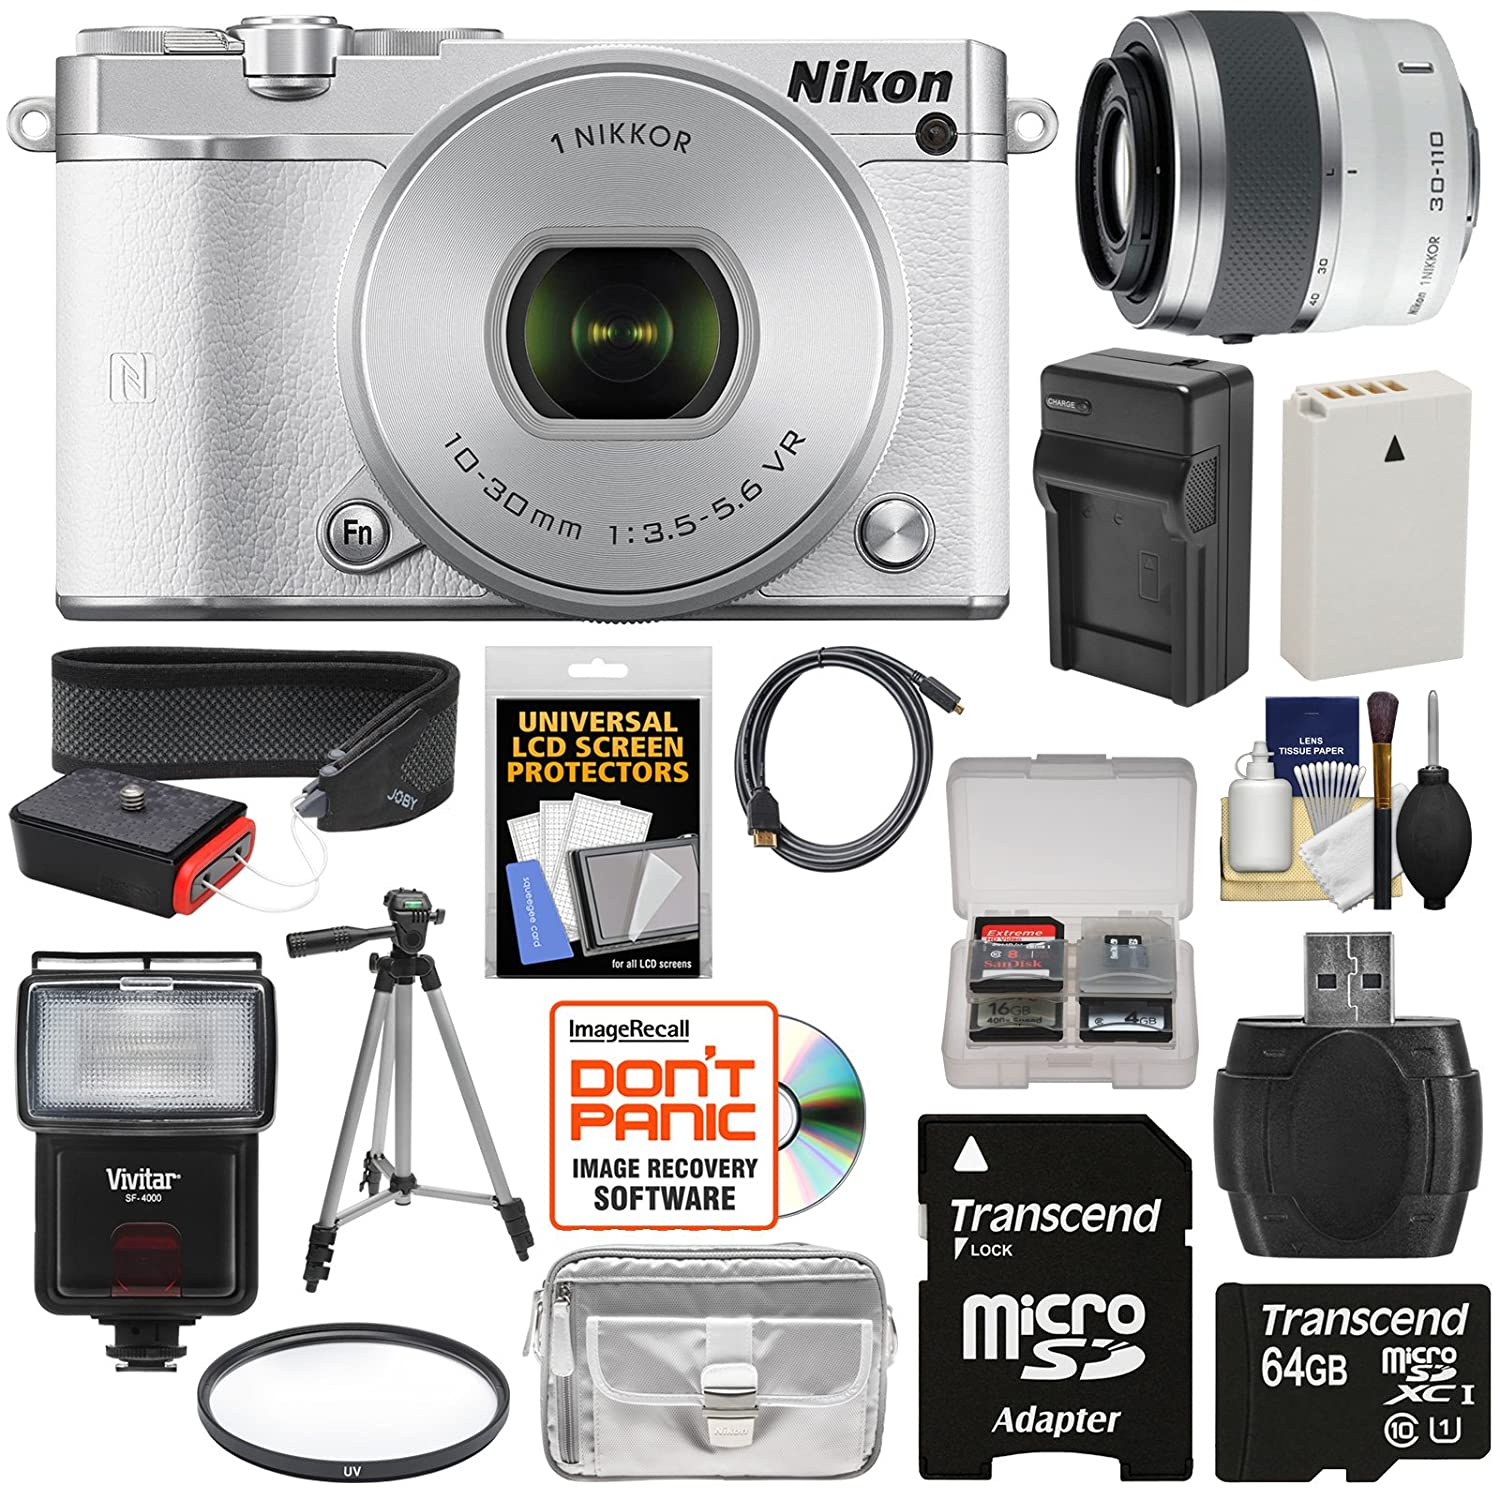 Nikon 1 J5 Wi-Fi Digital Camera & 10-30mm Lens (White) with 30-110mm VR Zoom Lens + 64GB Card + Battery + Charger + Strap + Case + Tripod + Flash + Filter Kit